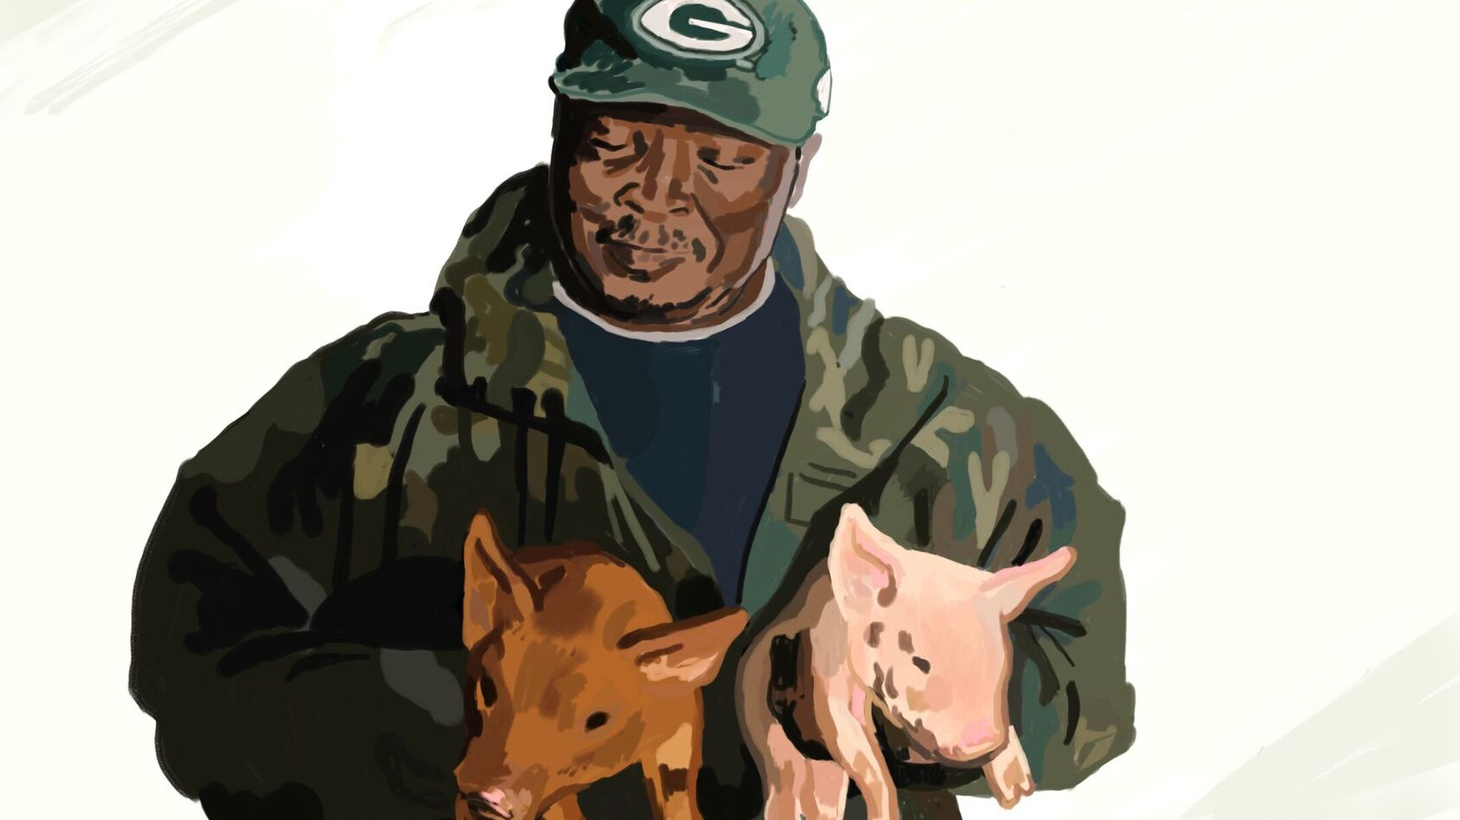 Reporter John Biewen of Scene on Radiotells the story of one black farm couple who say the USDA treated them unfairly because of their race. (REPEAT)